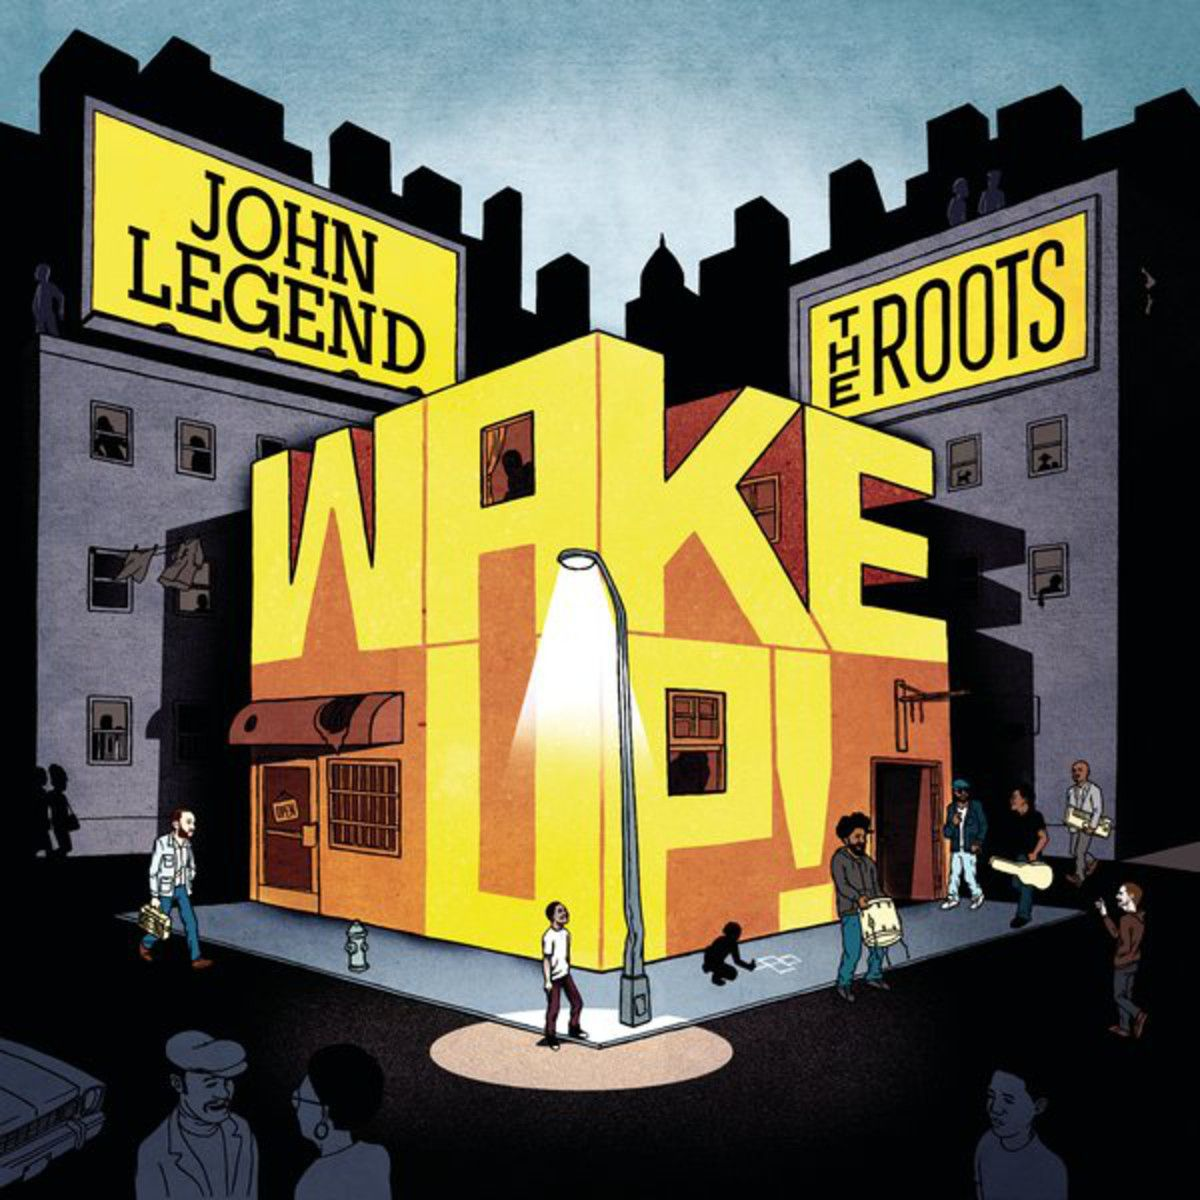 John Legend - Wake Up! album cover